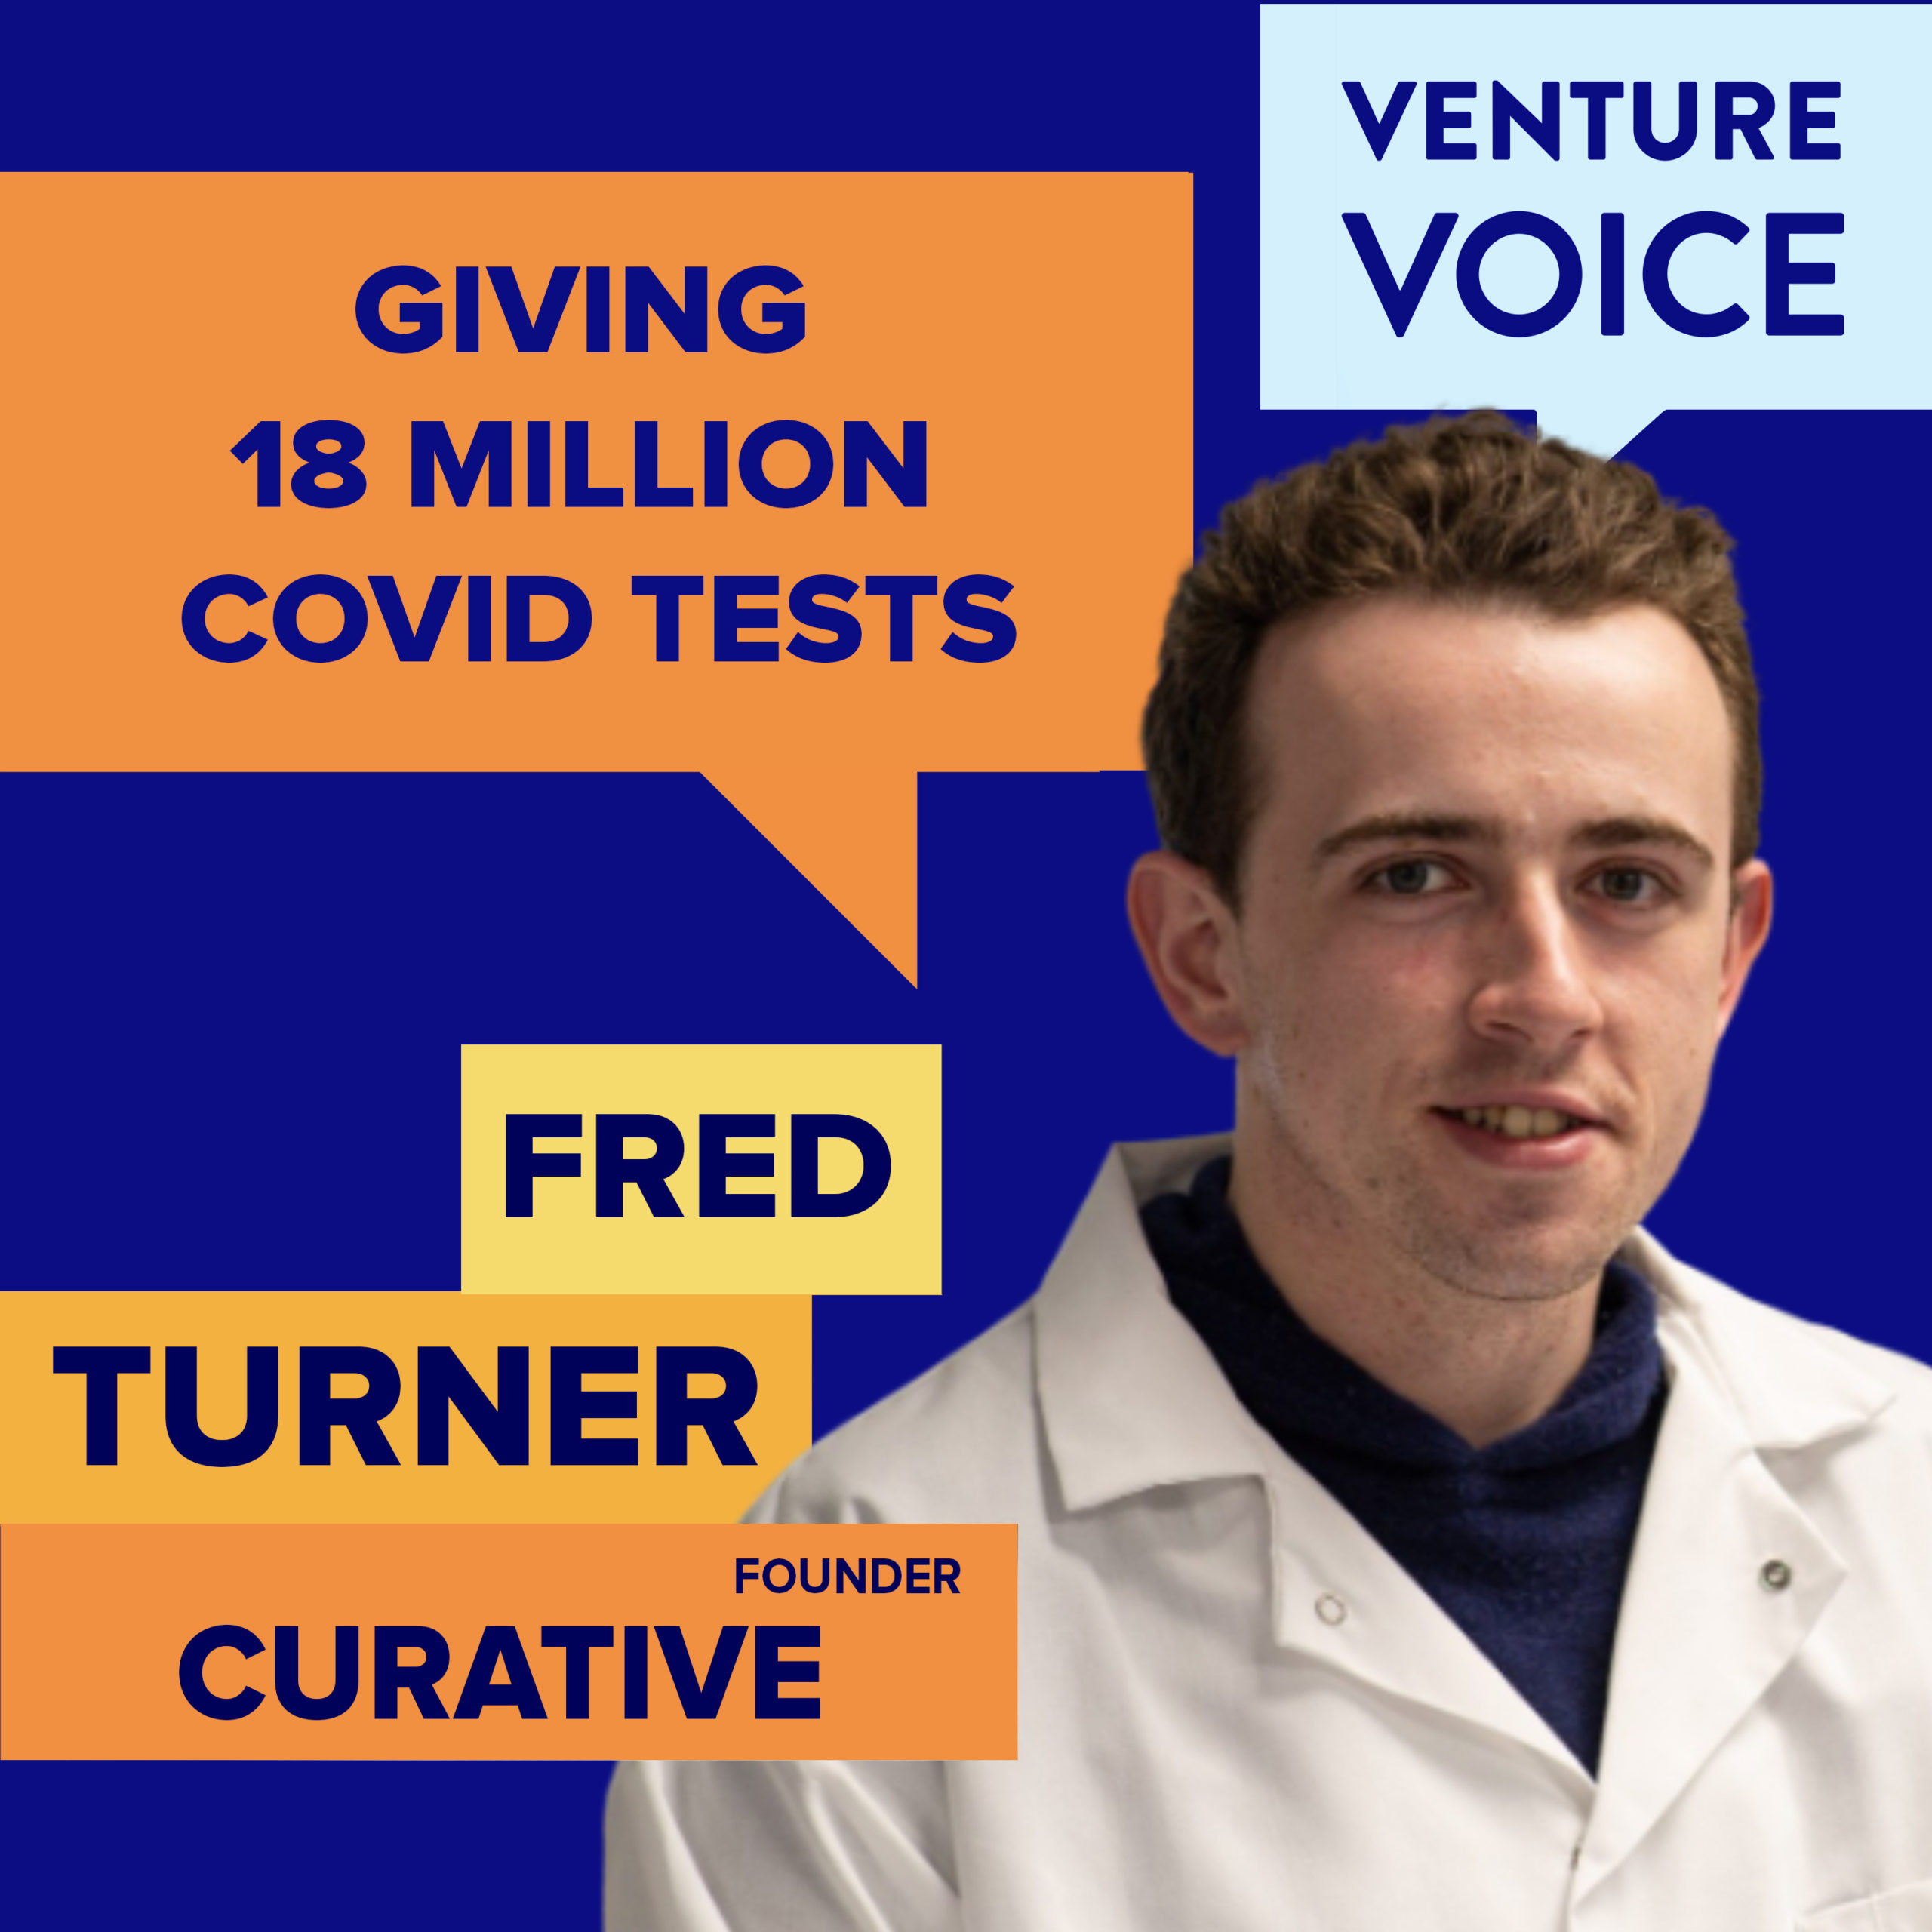 Fred Turner of Curative